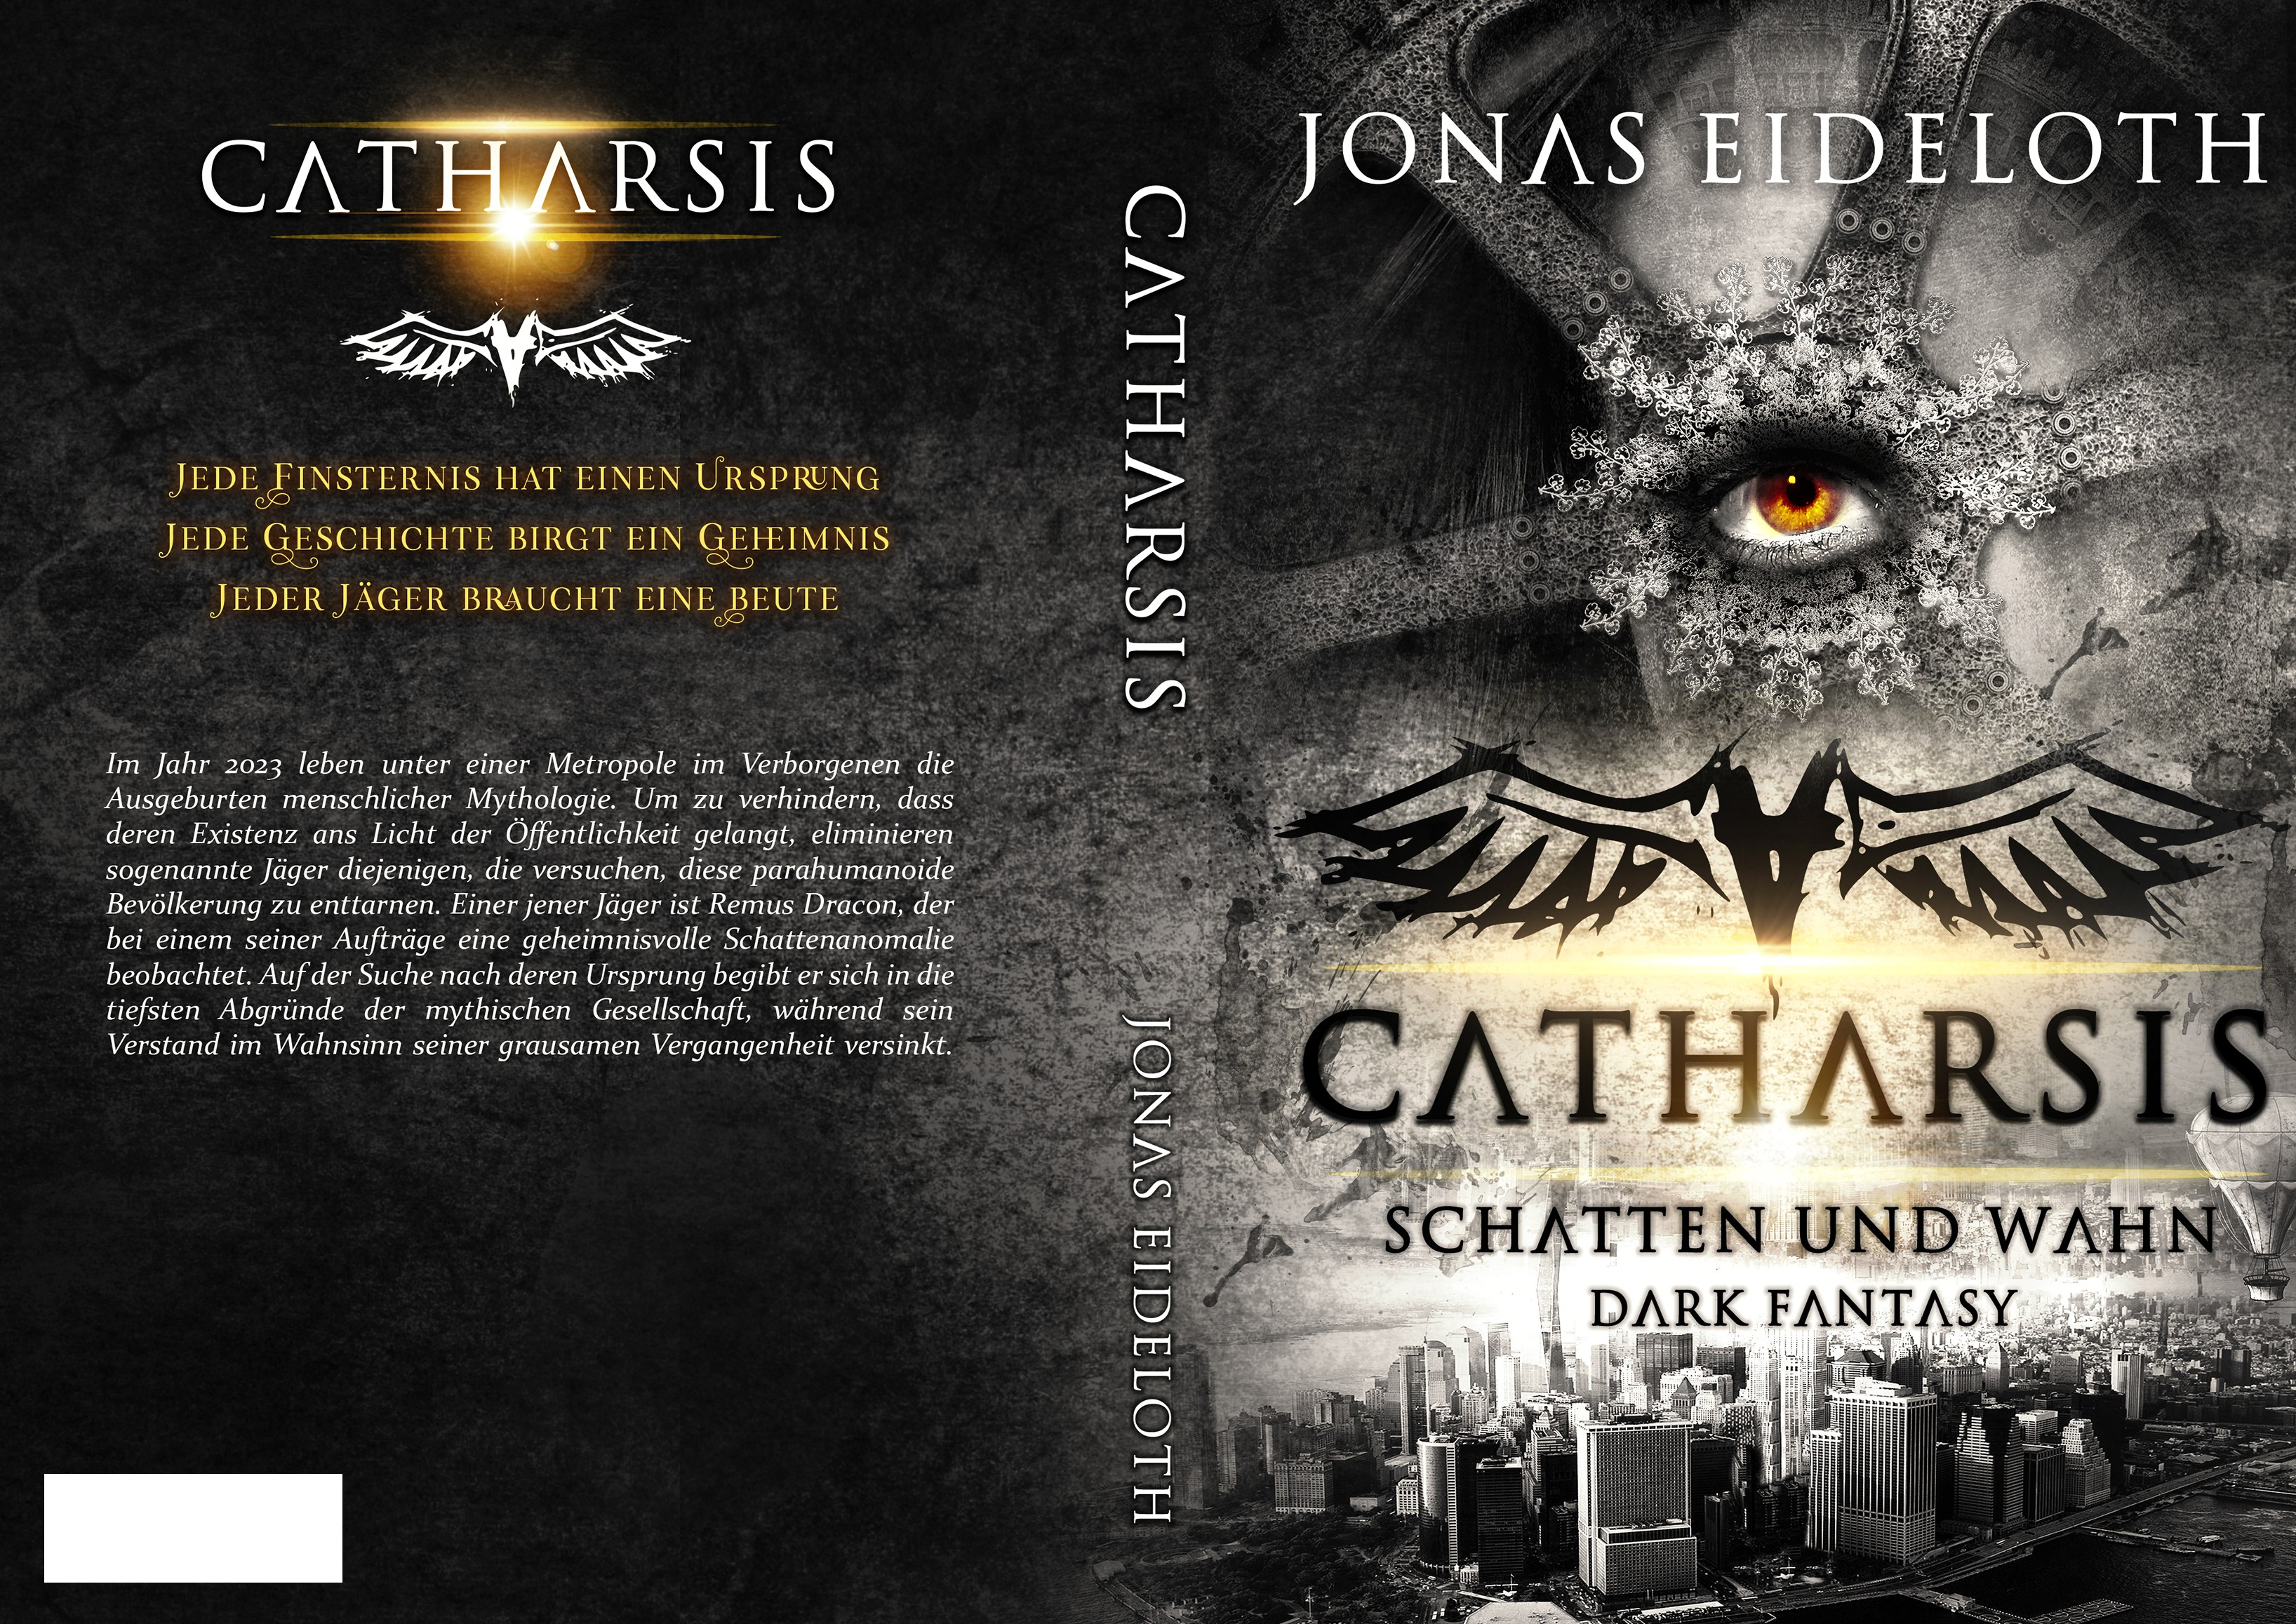 Design a dark, yet elegant cover for a dark fantasy novel. Its the first book in a series